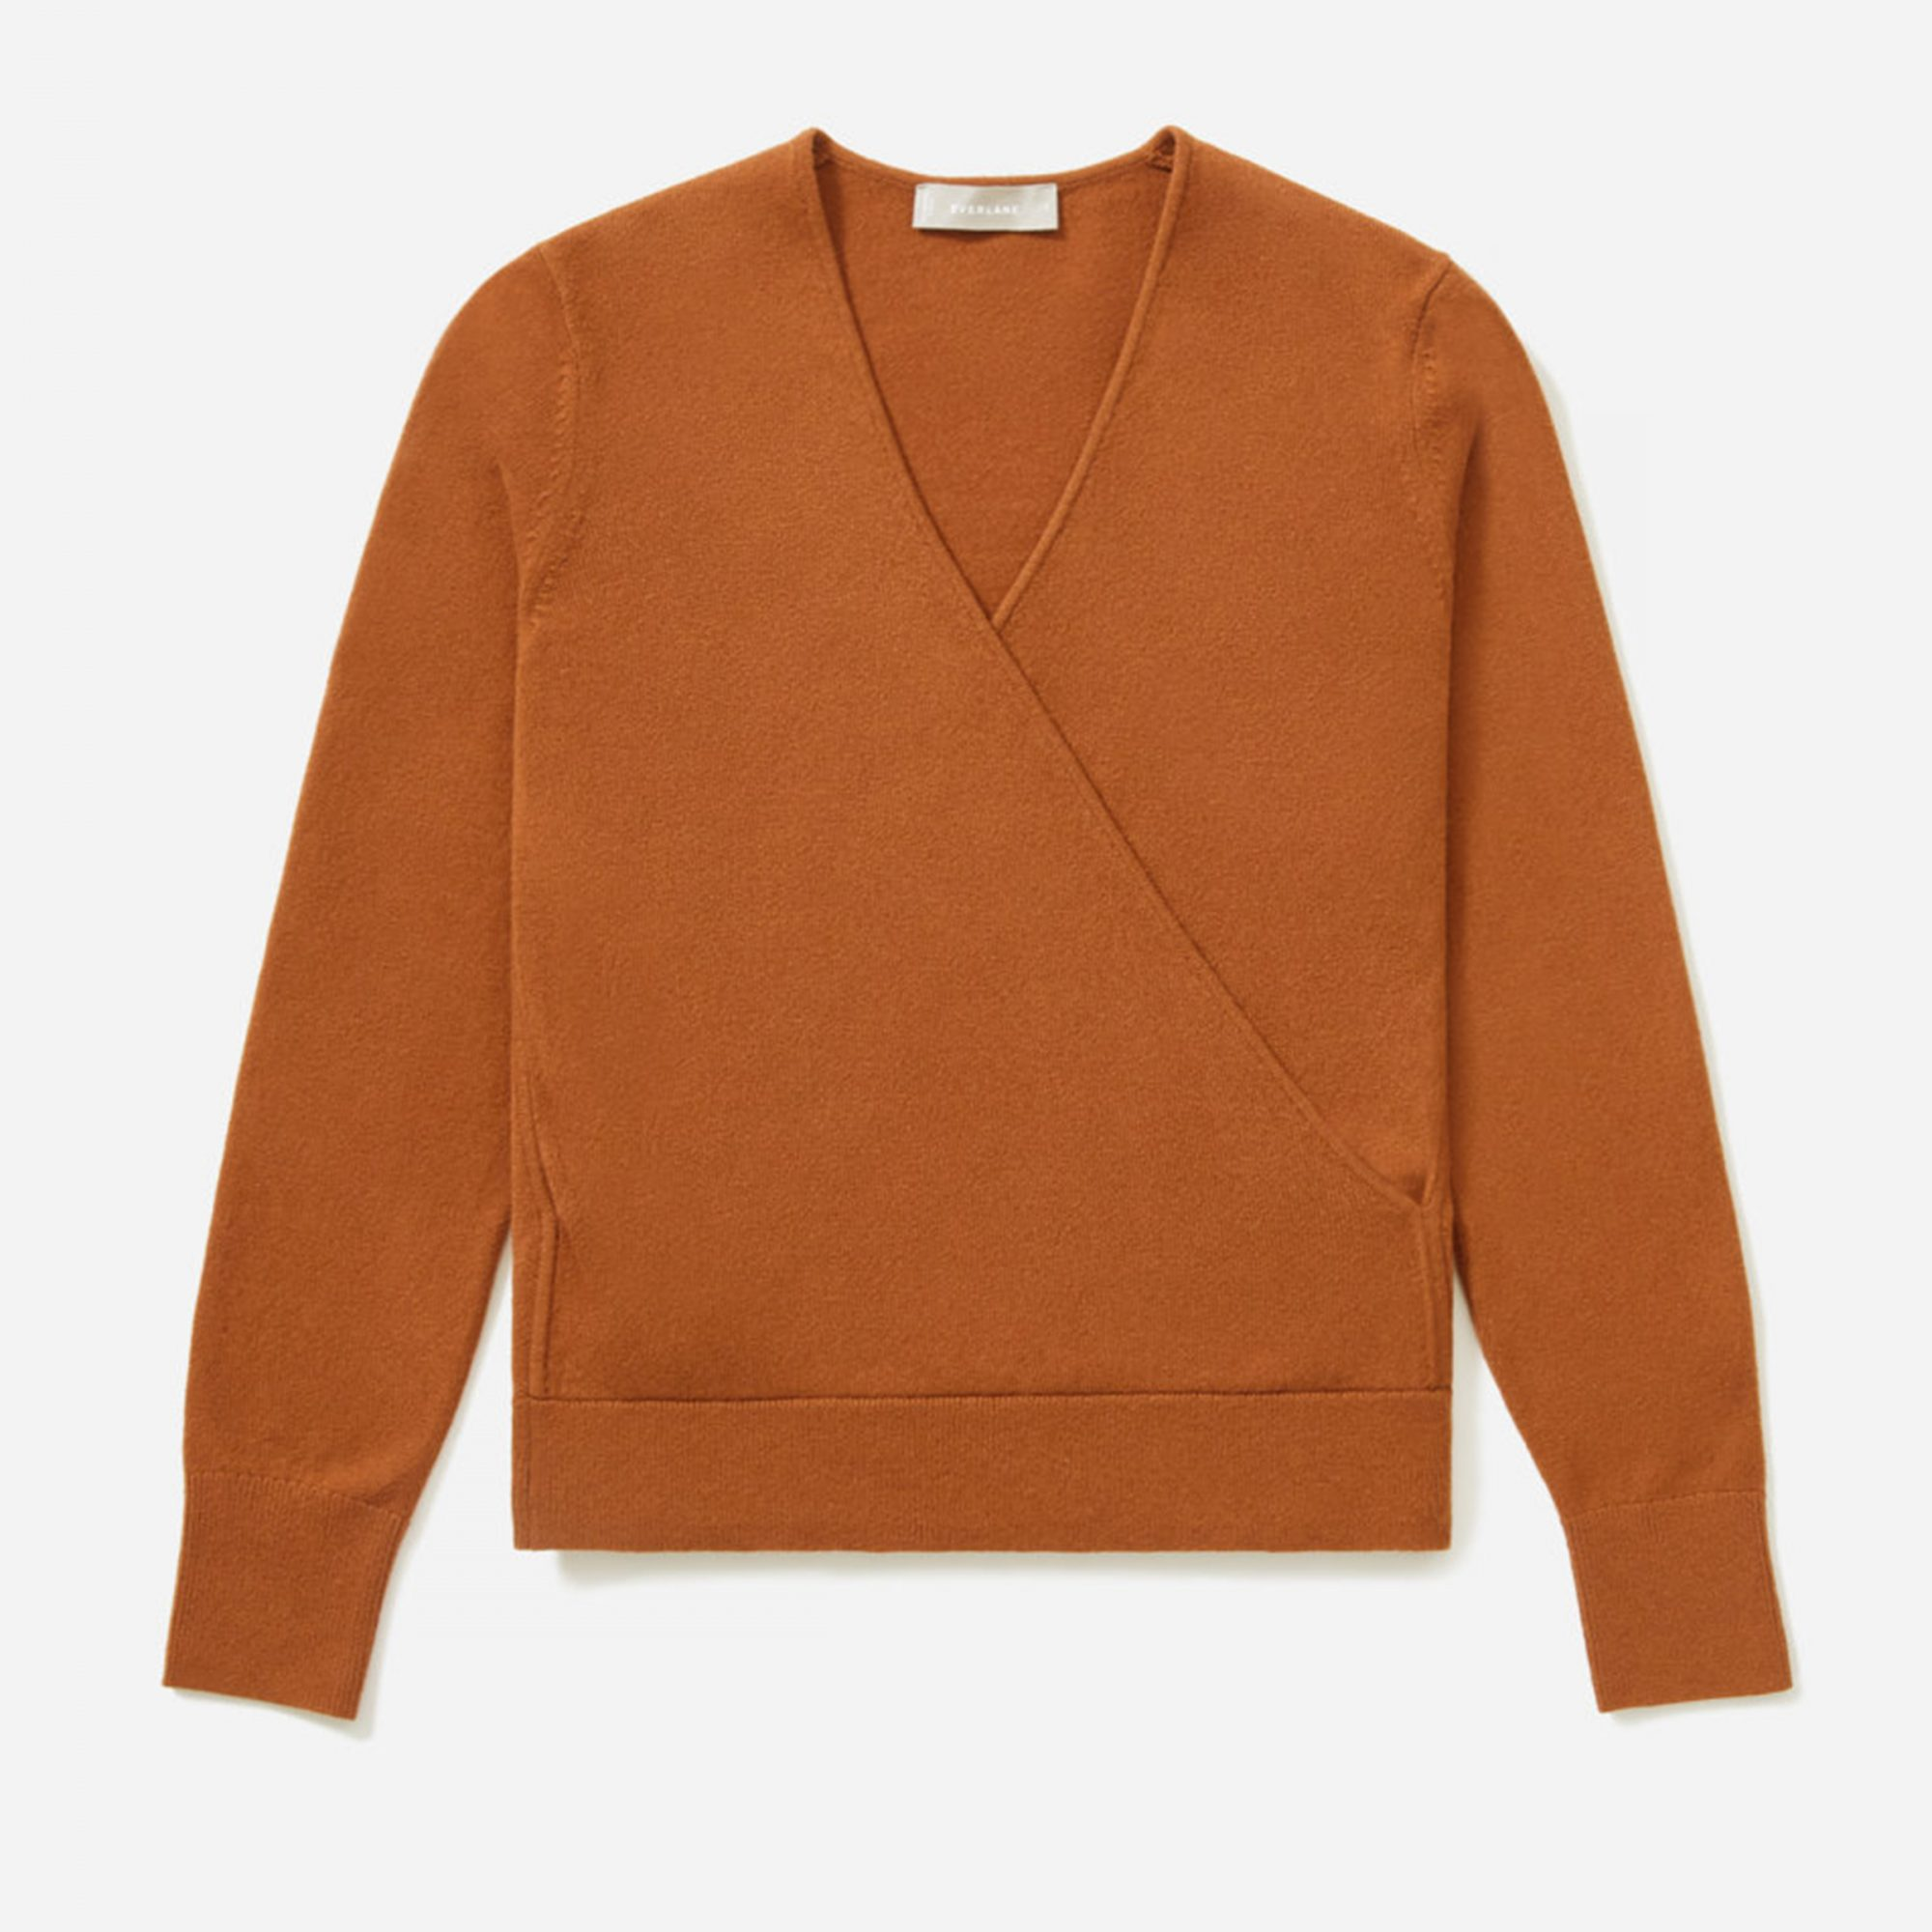 The Cashmere Wrap Sweater